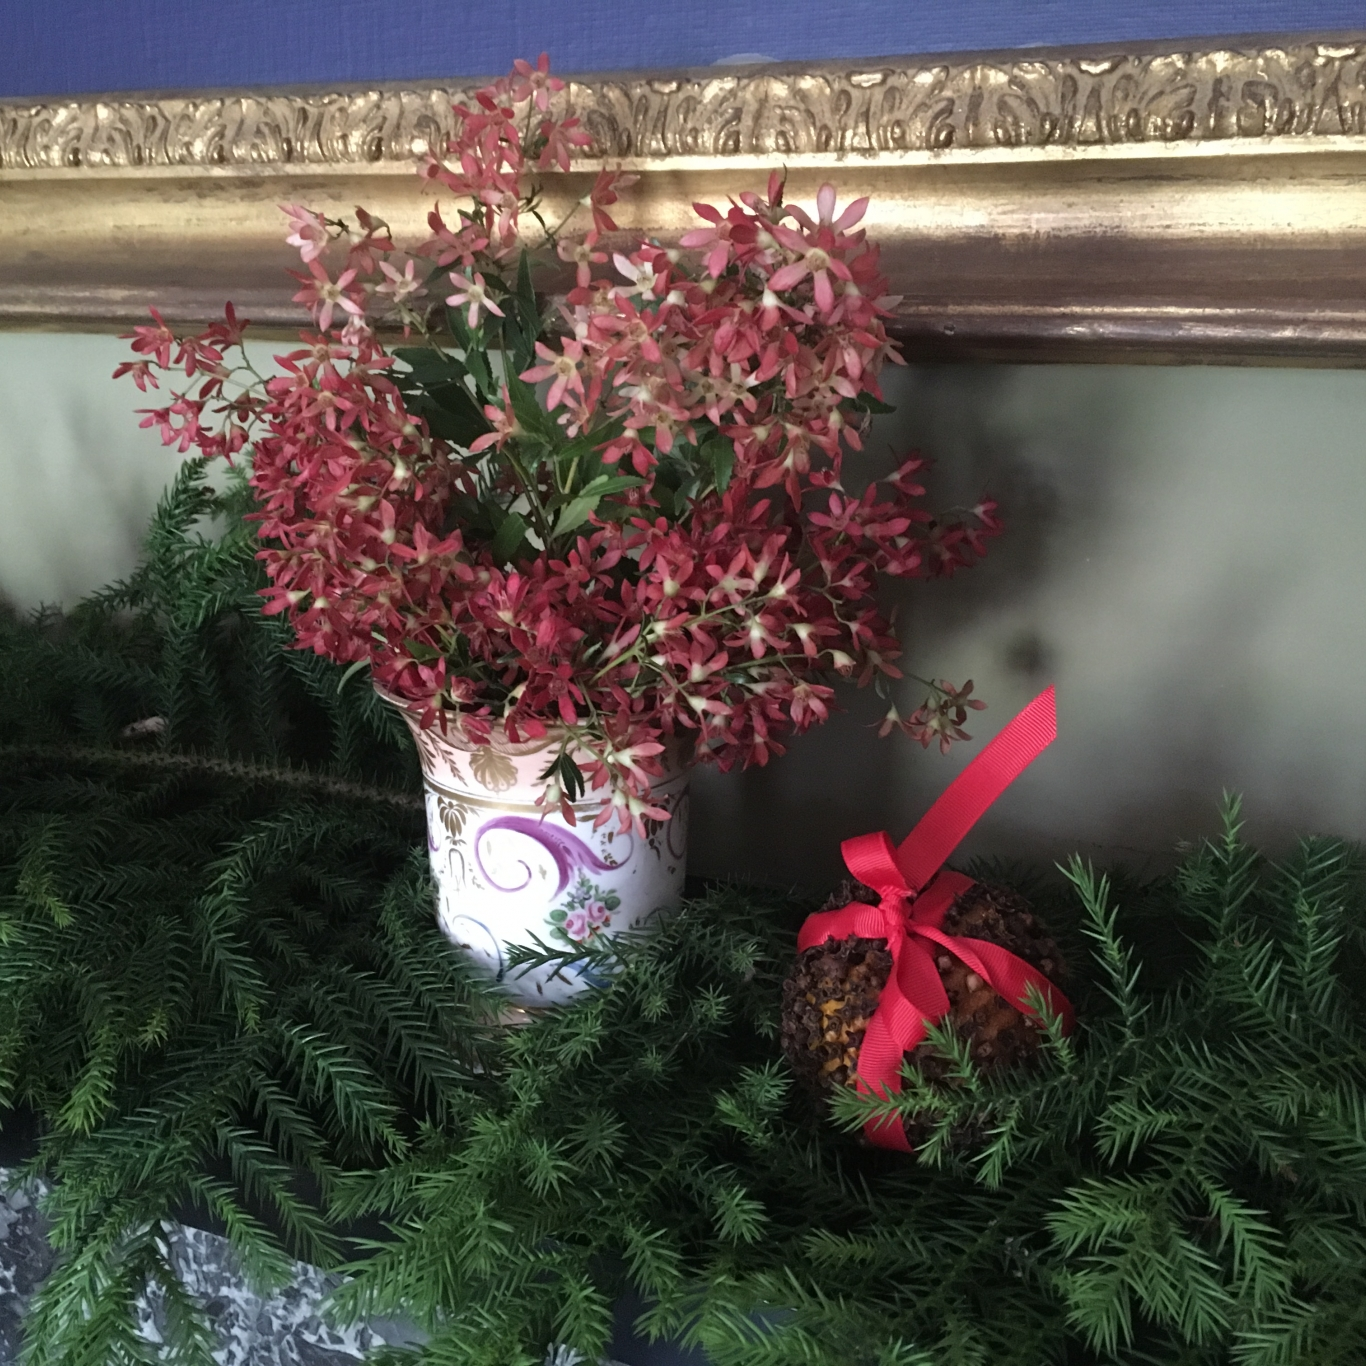 Closeup of floral display containing Christmas bush.